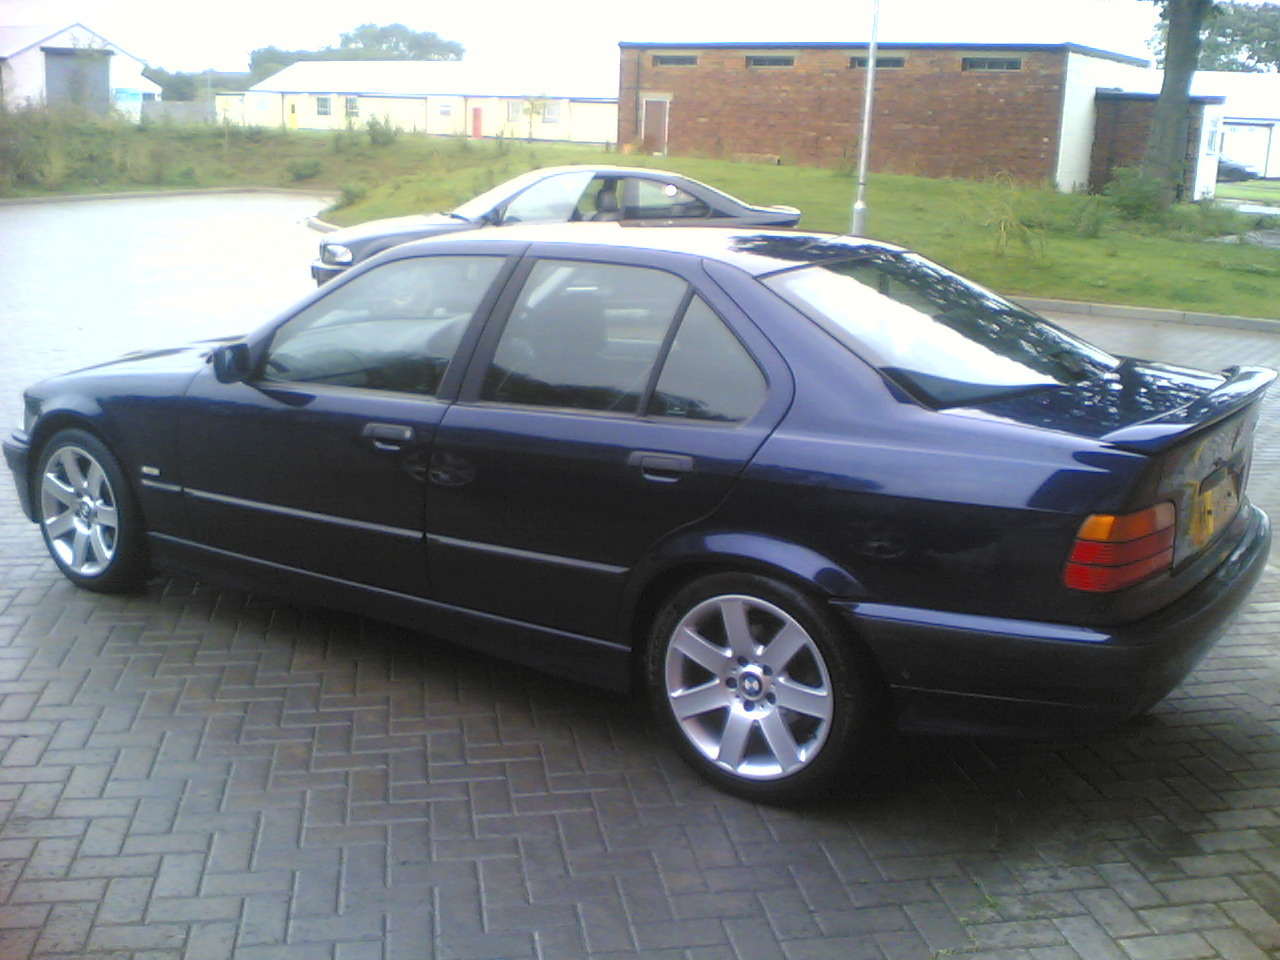 BMW 3 series 318Ci 1997 photo - 12